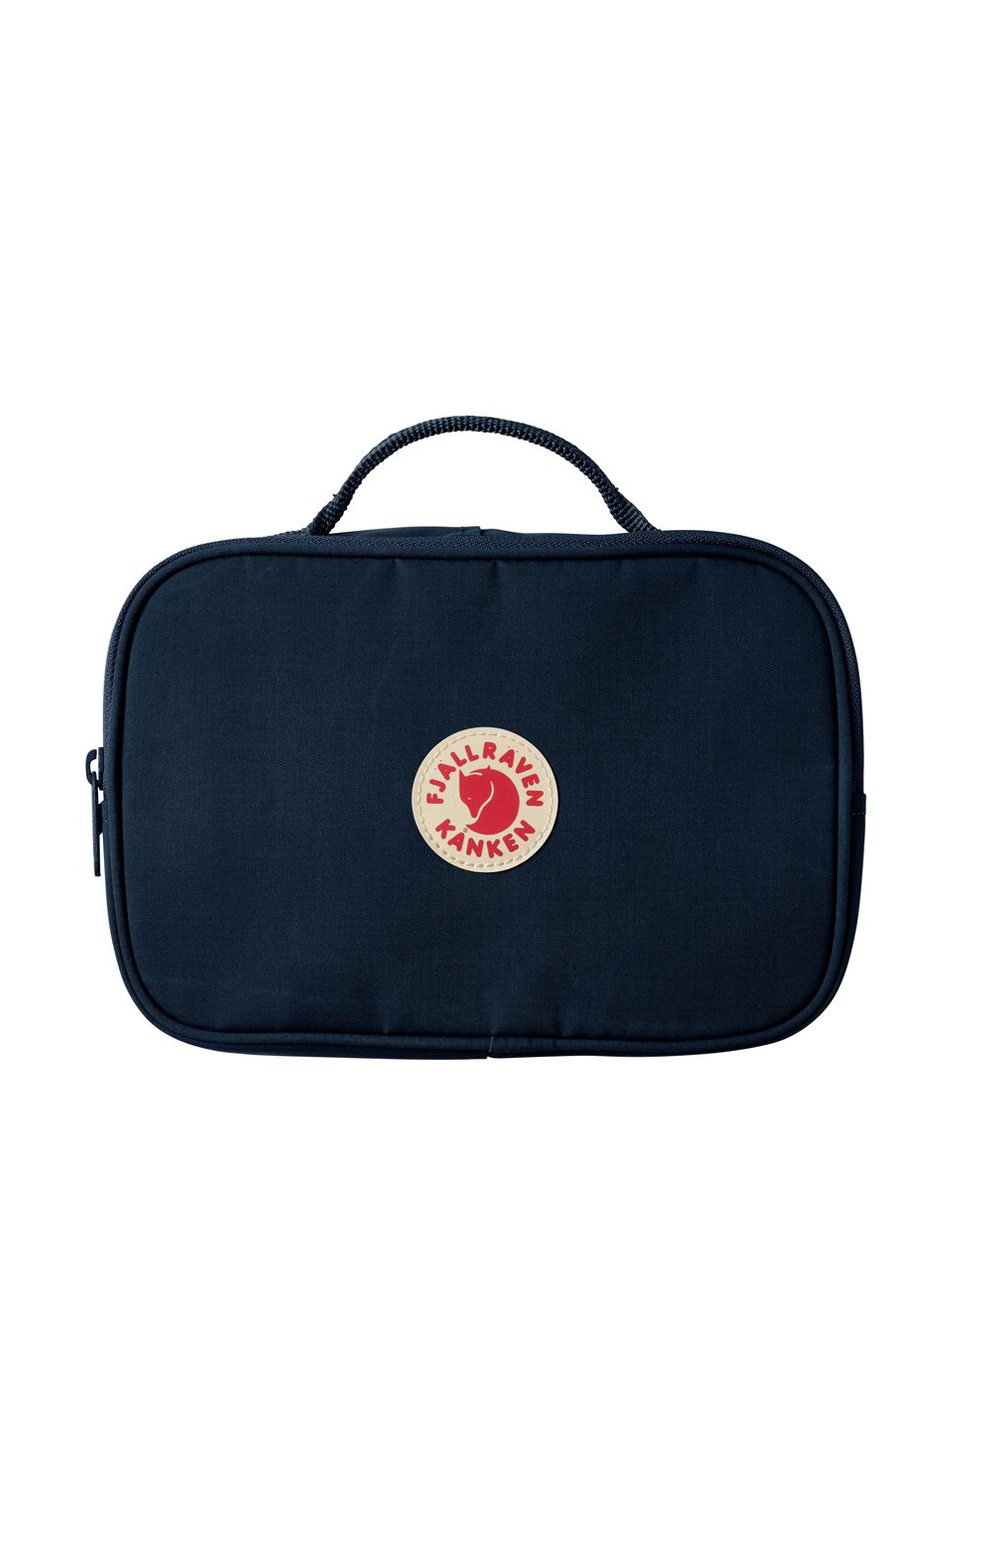 Kanken Toiletry Bag - Navy